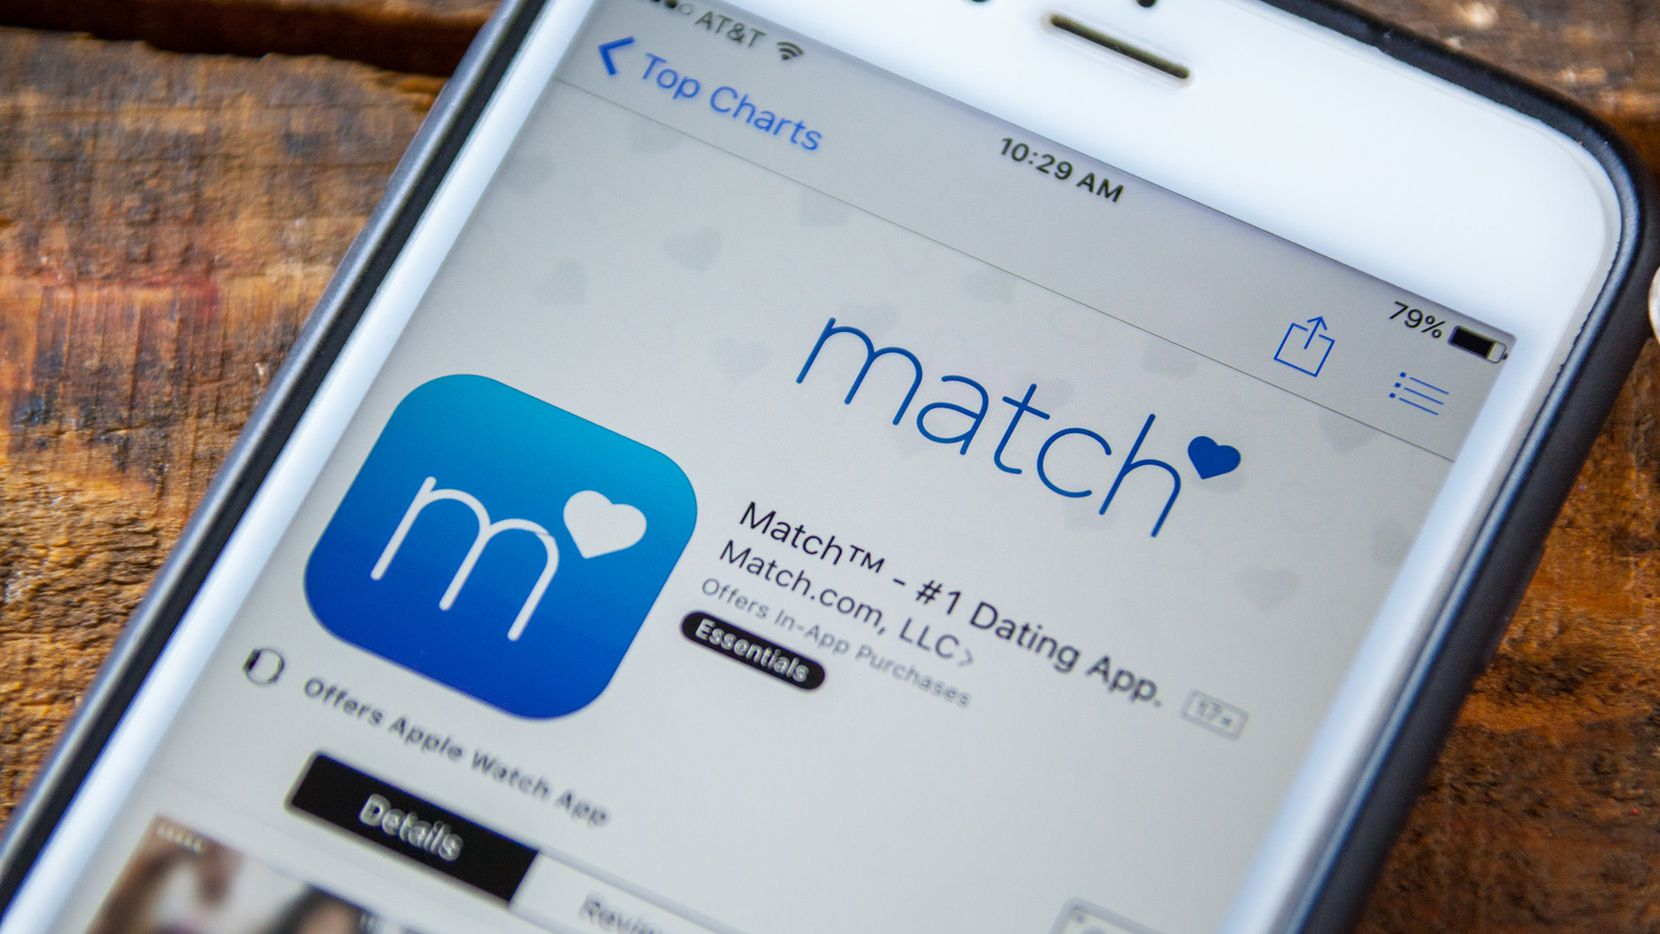 10 Online Dating Statistics (For U.s.) You Should Know ... - The Facts